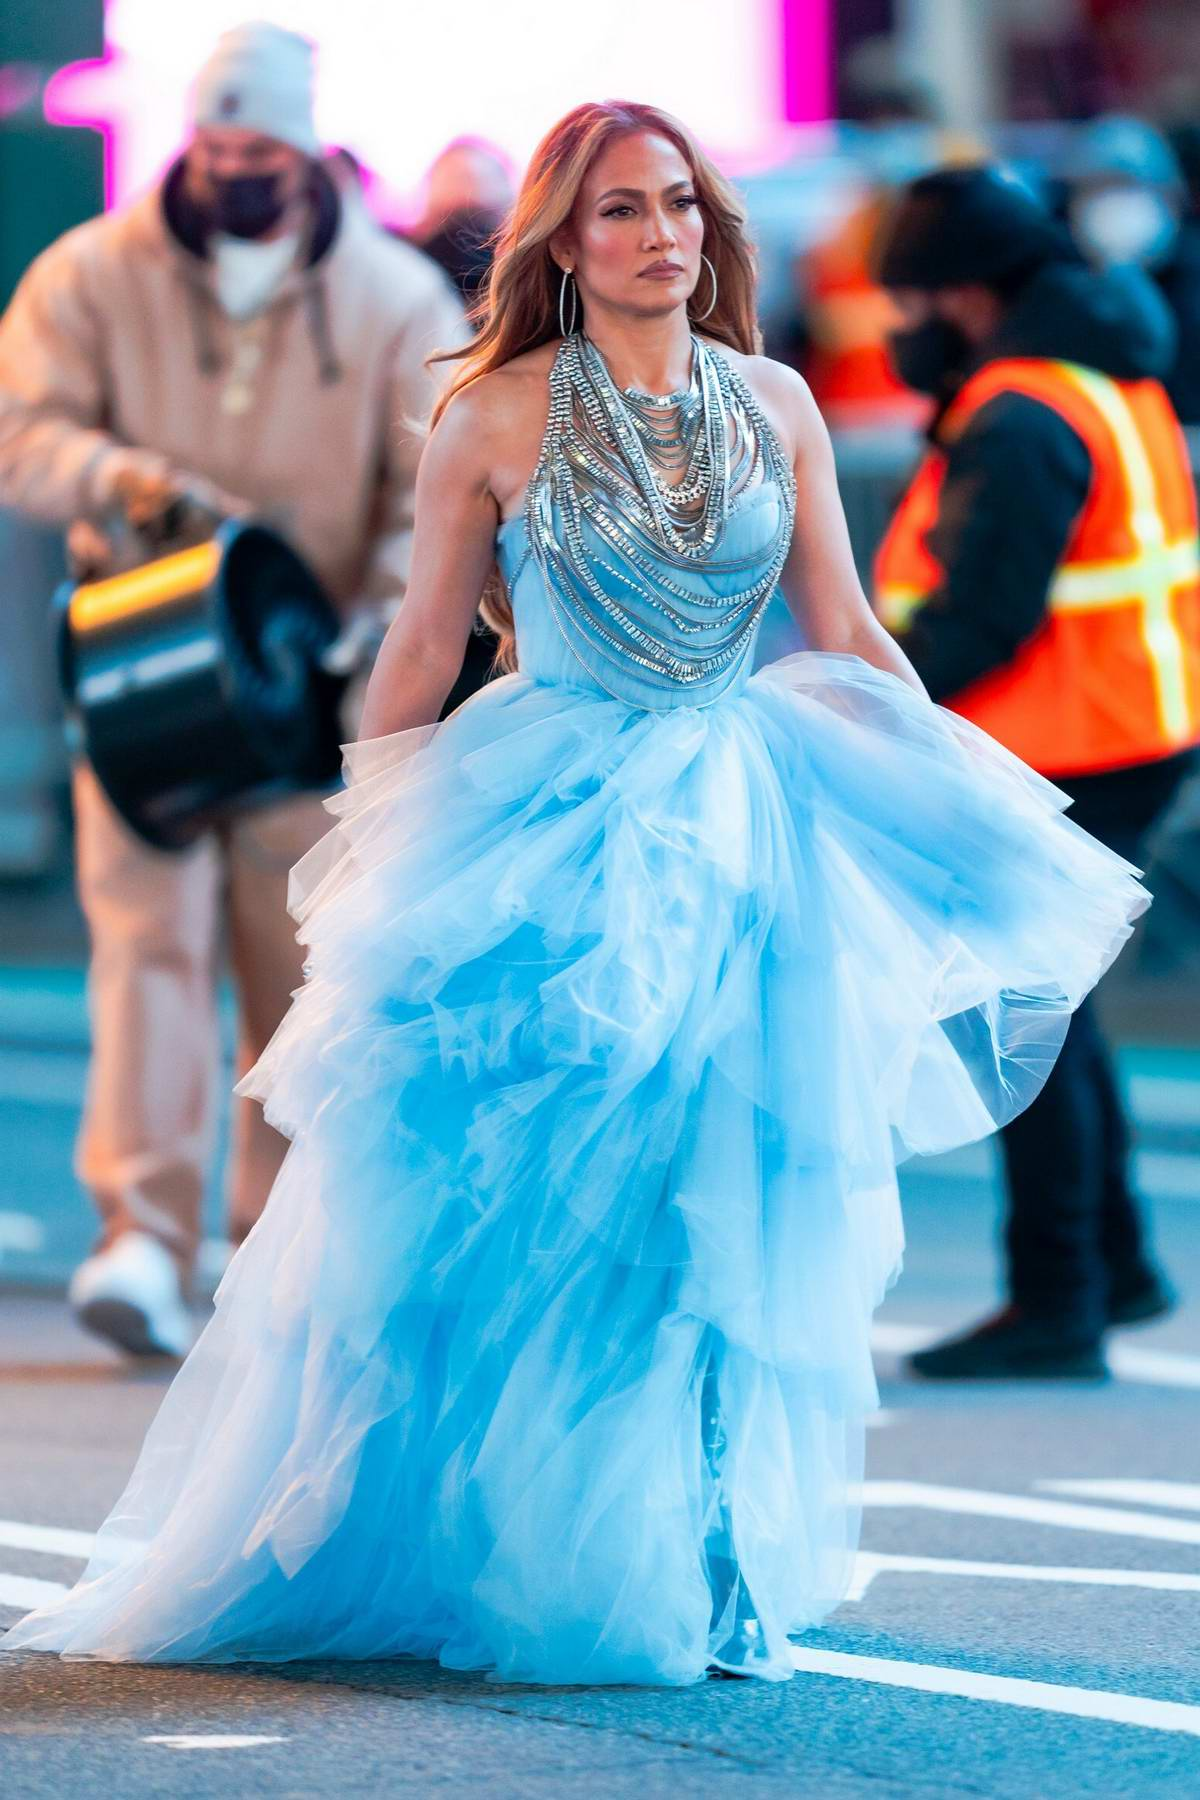 Jennifer Lopez stuns in a blue dress at the New Year's Rockin' Eve performance rehearsal in Times Square, New York City